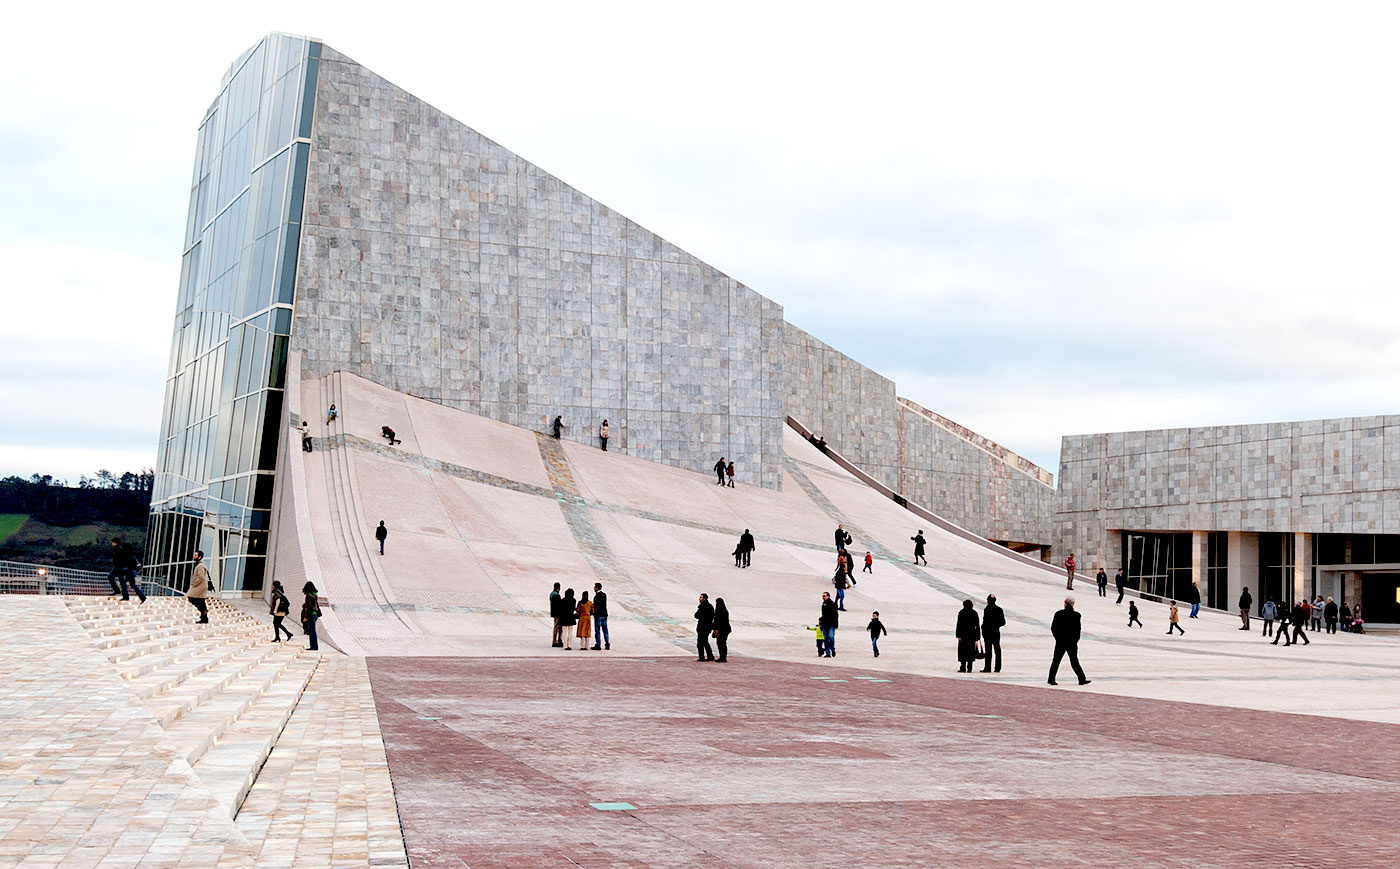 15 Works of Peter Eisenman Every Architect should visit - City of Culture of Galicia, Spain